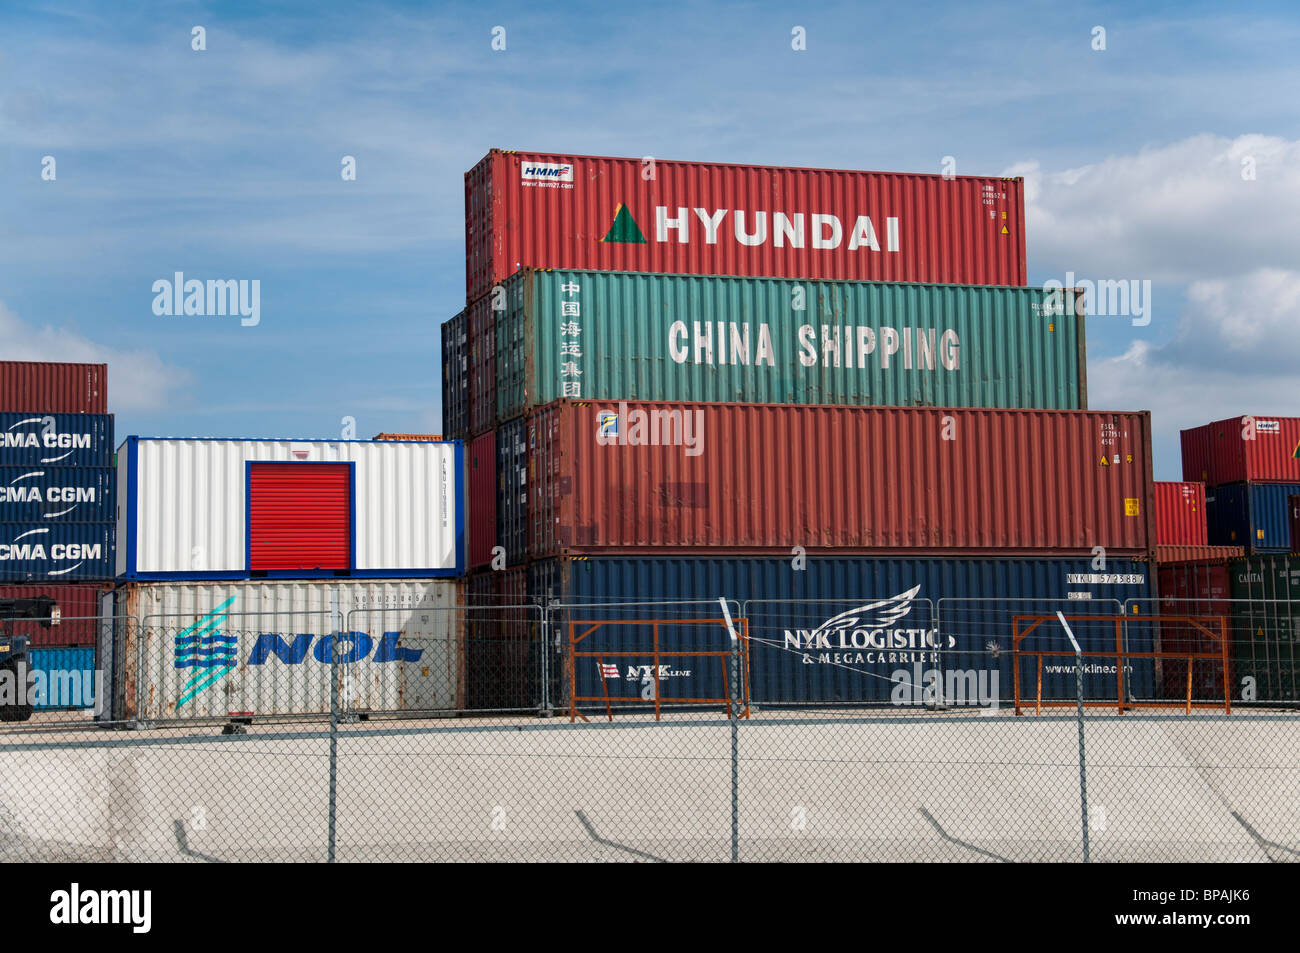 Shipping containers stacked up at Southampton docks in Southampton, England. - Stock Image